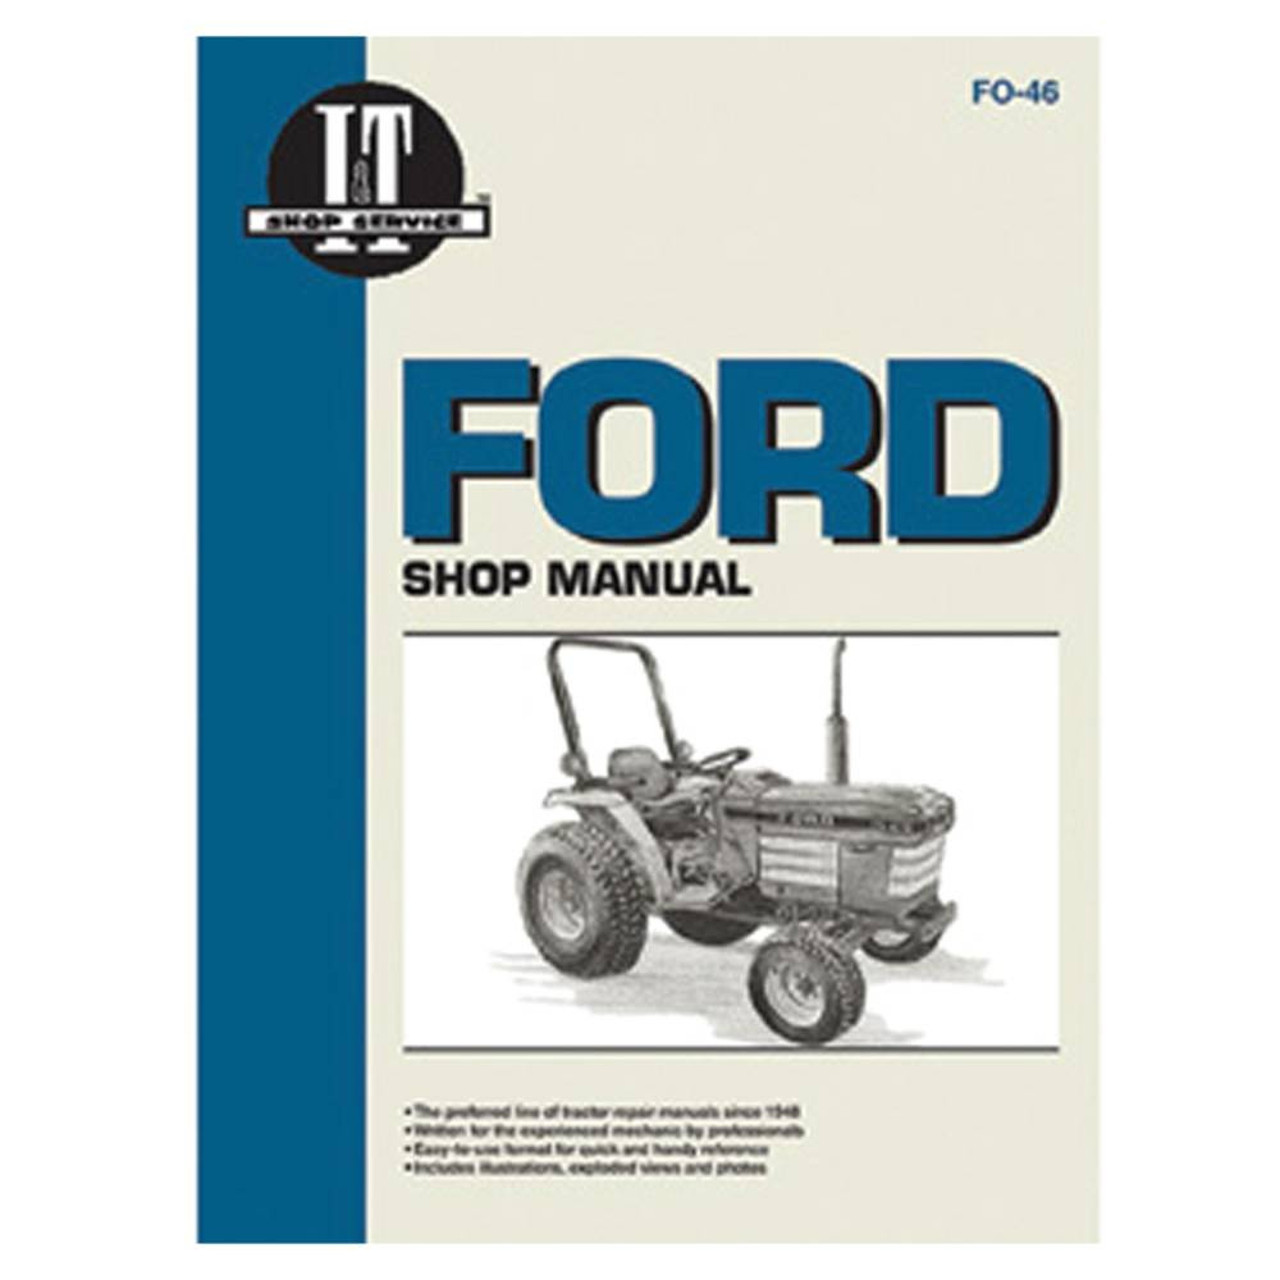 Service Manual Ford New Holland Tractor Fo-46 1120 1220 1320 1520 1720 1920 2120